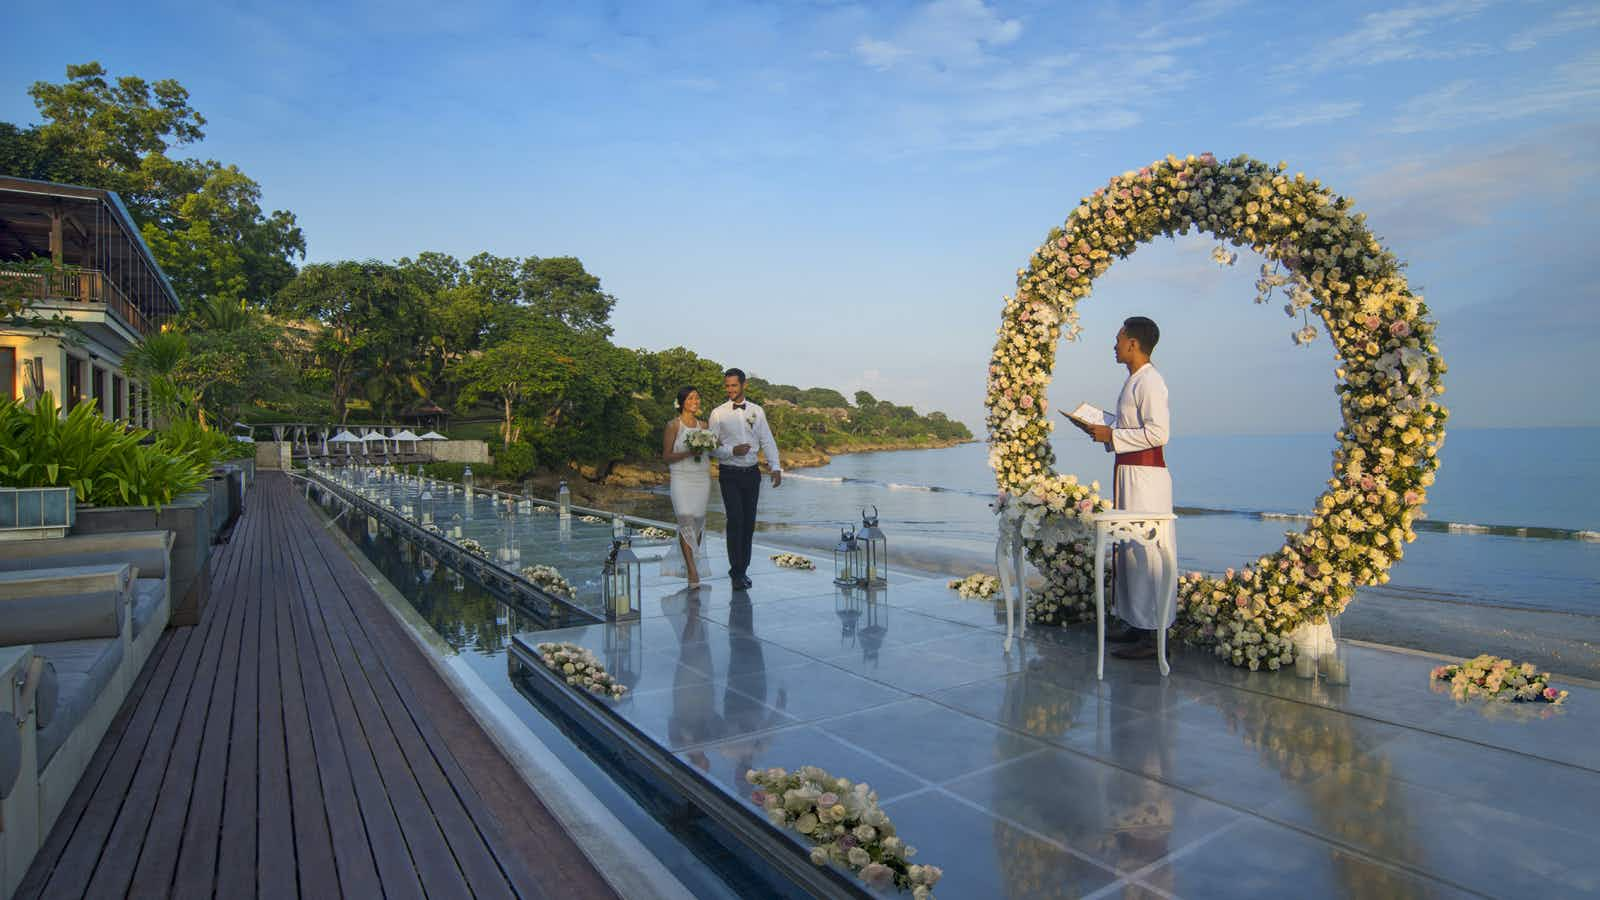 Couples can now walk down the longest floating wedding aisle on the island of Bali